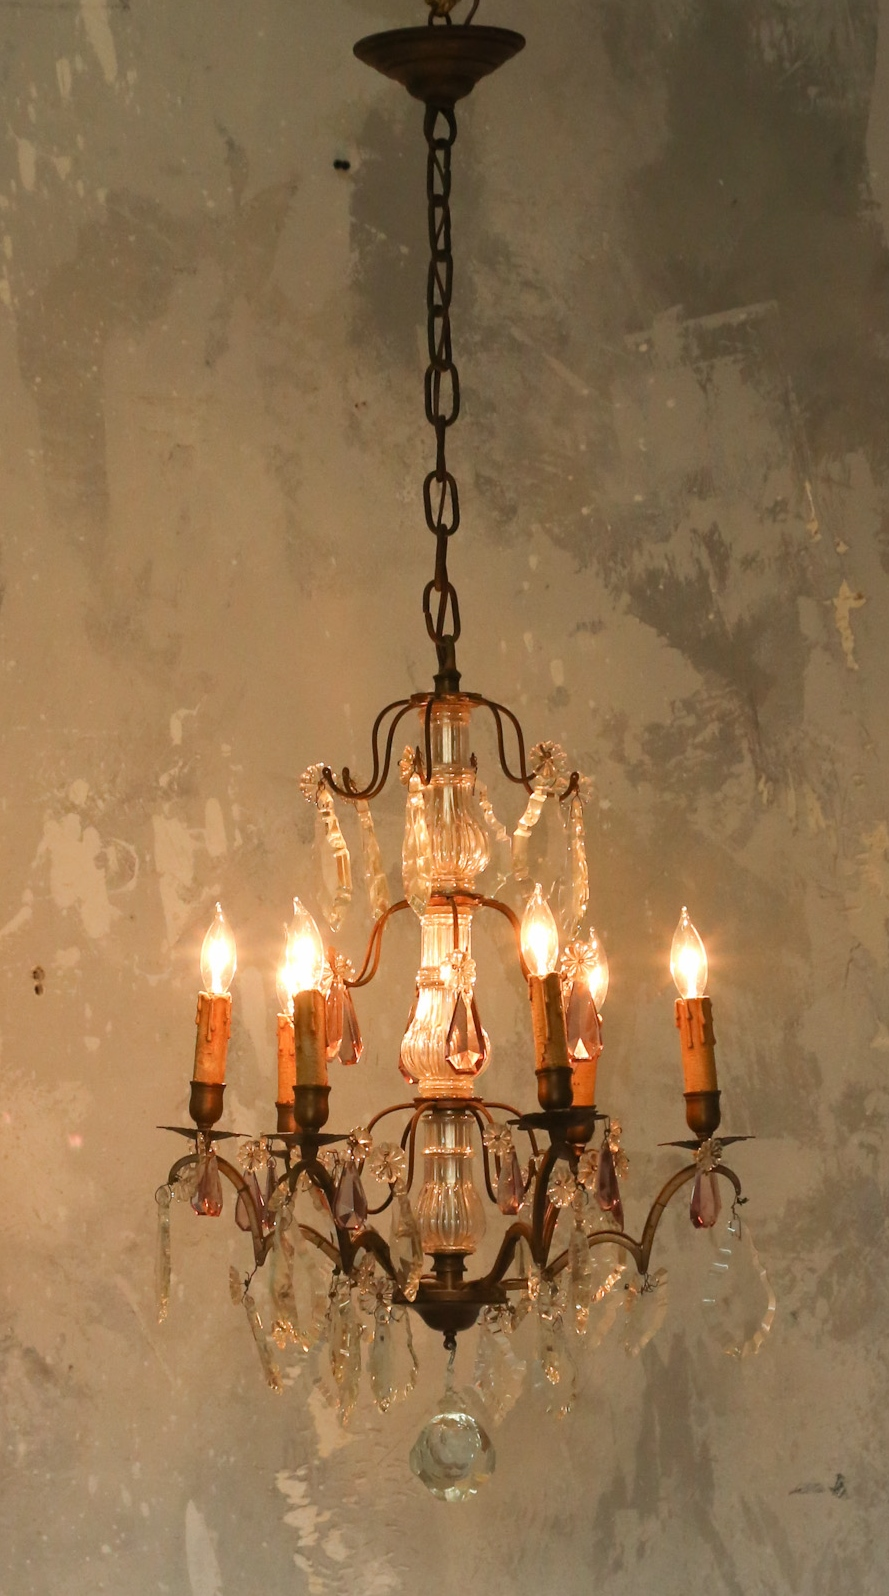 Western living add june 2013 chandelier.jpg